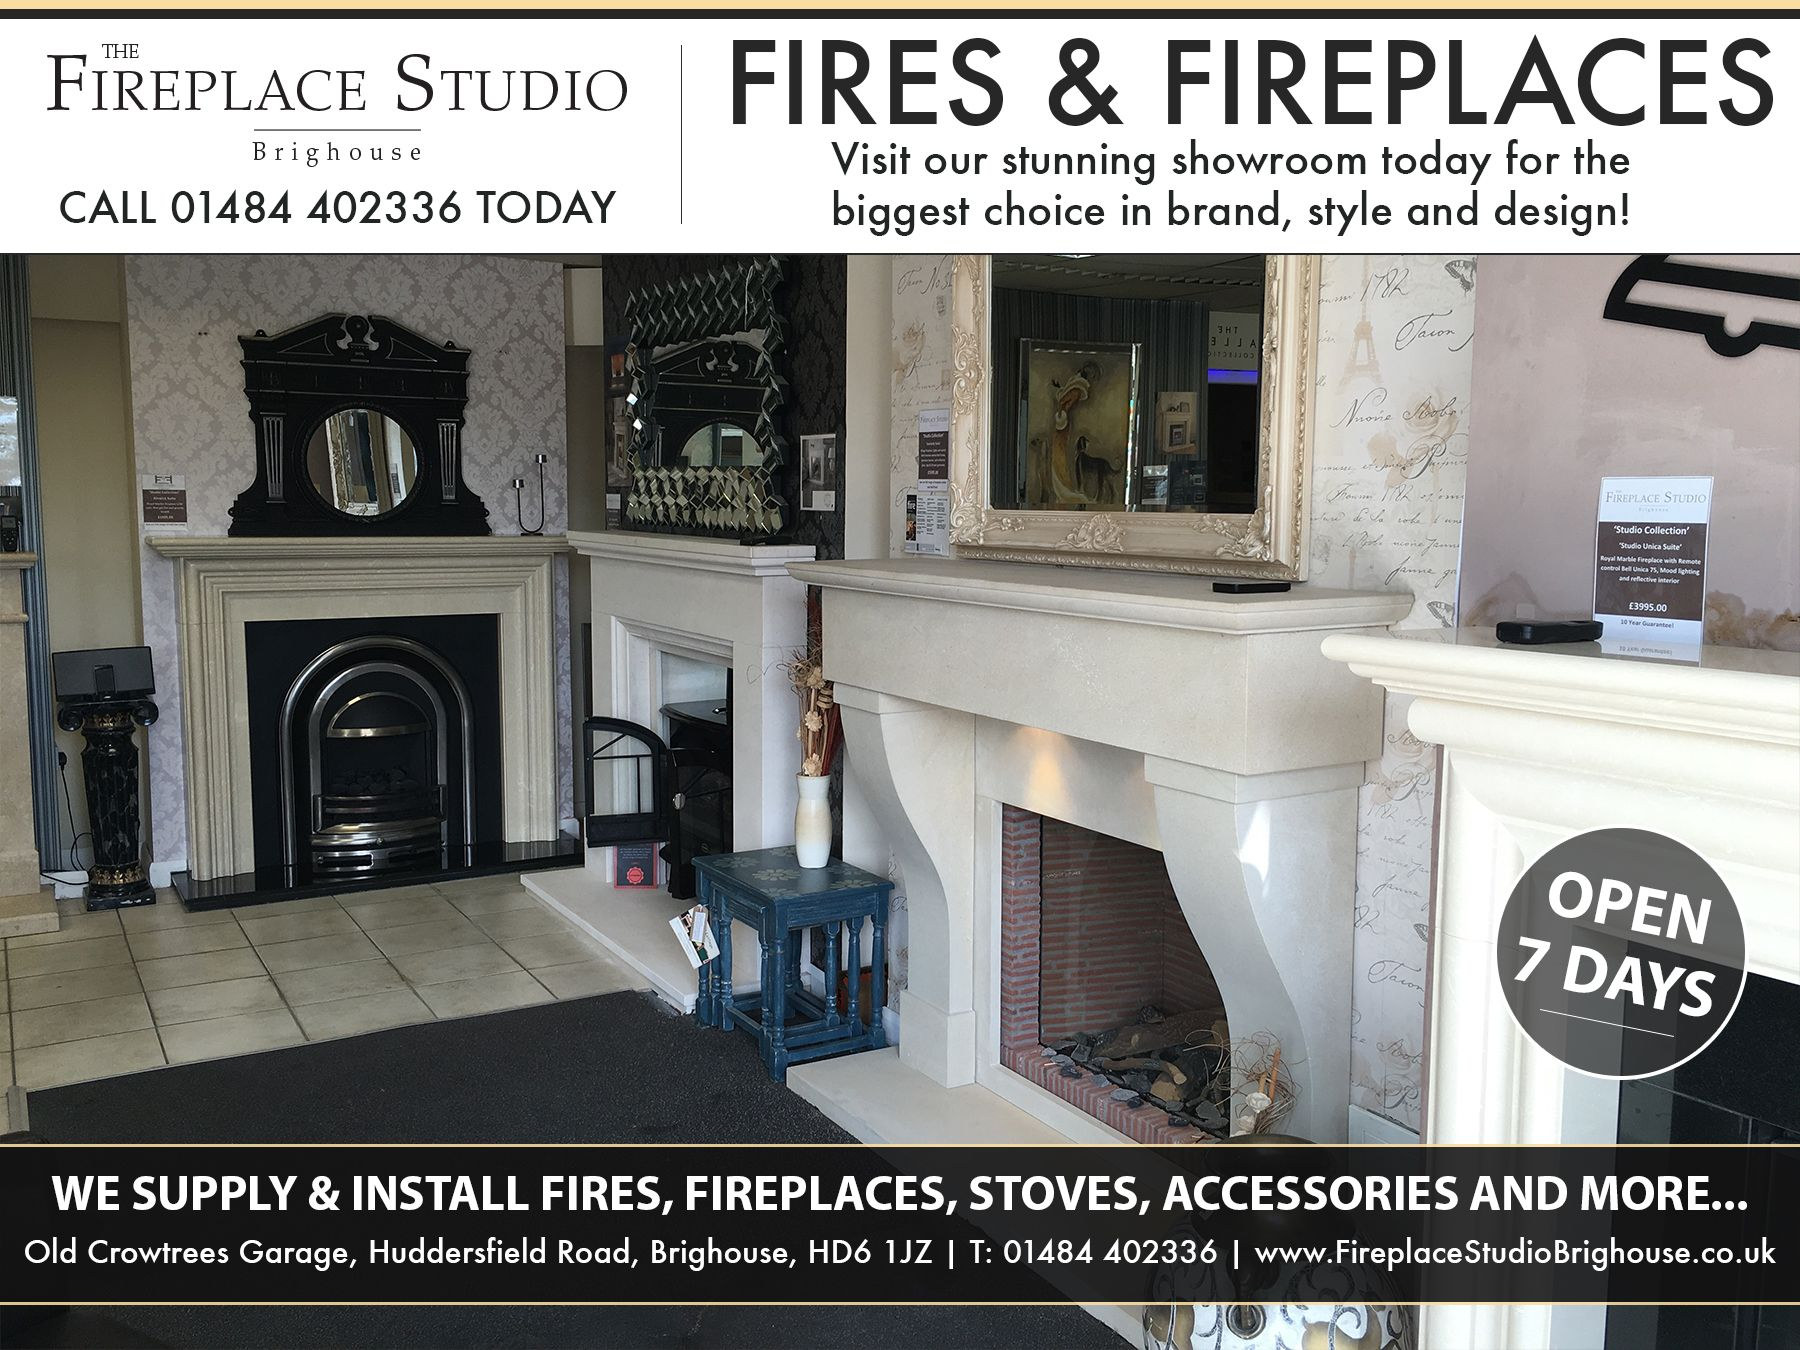 the fireplace studio brighouse is probably the most comprehensive